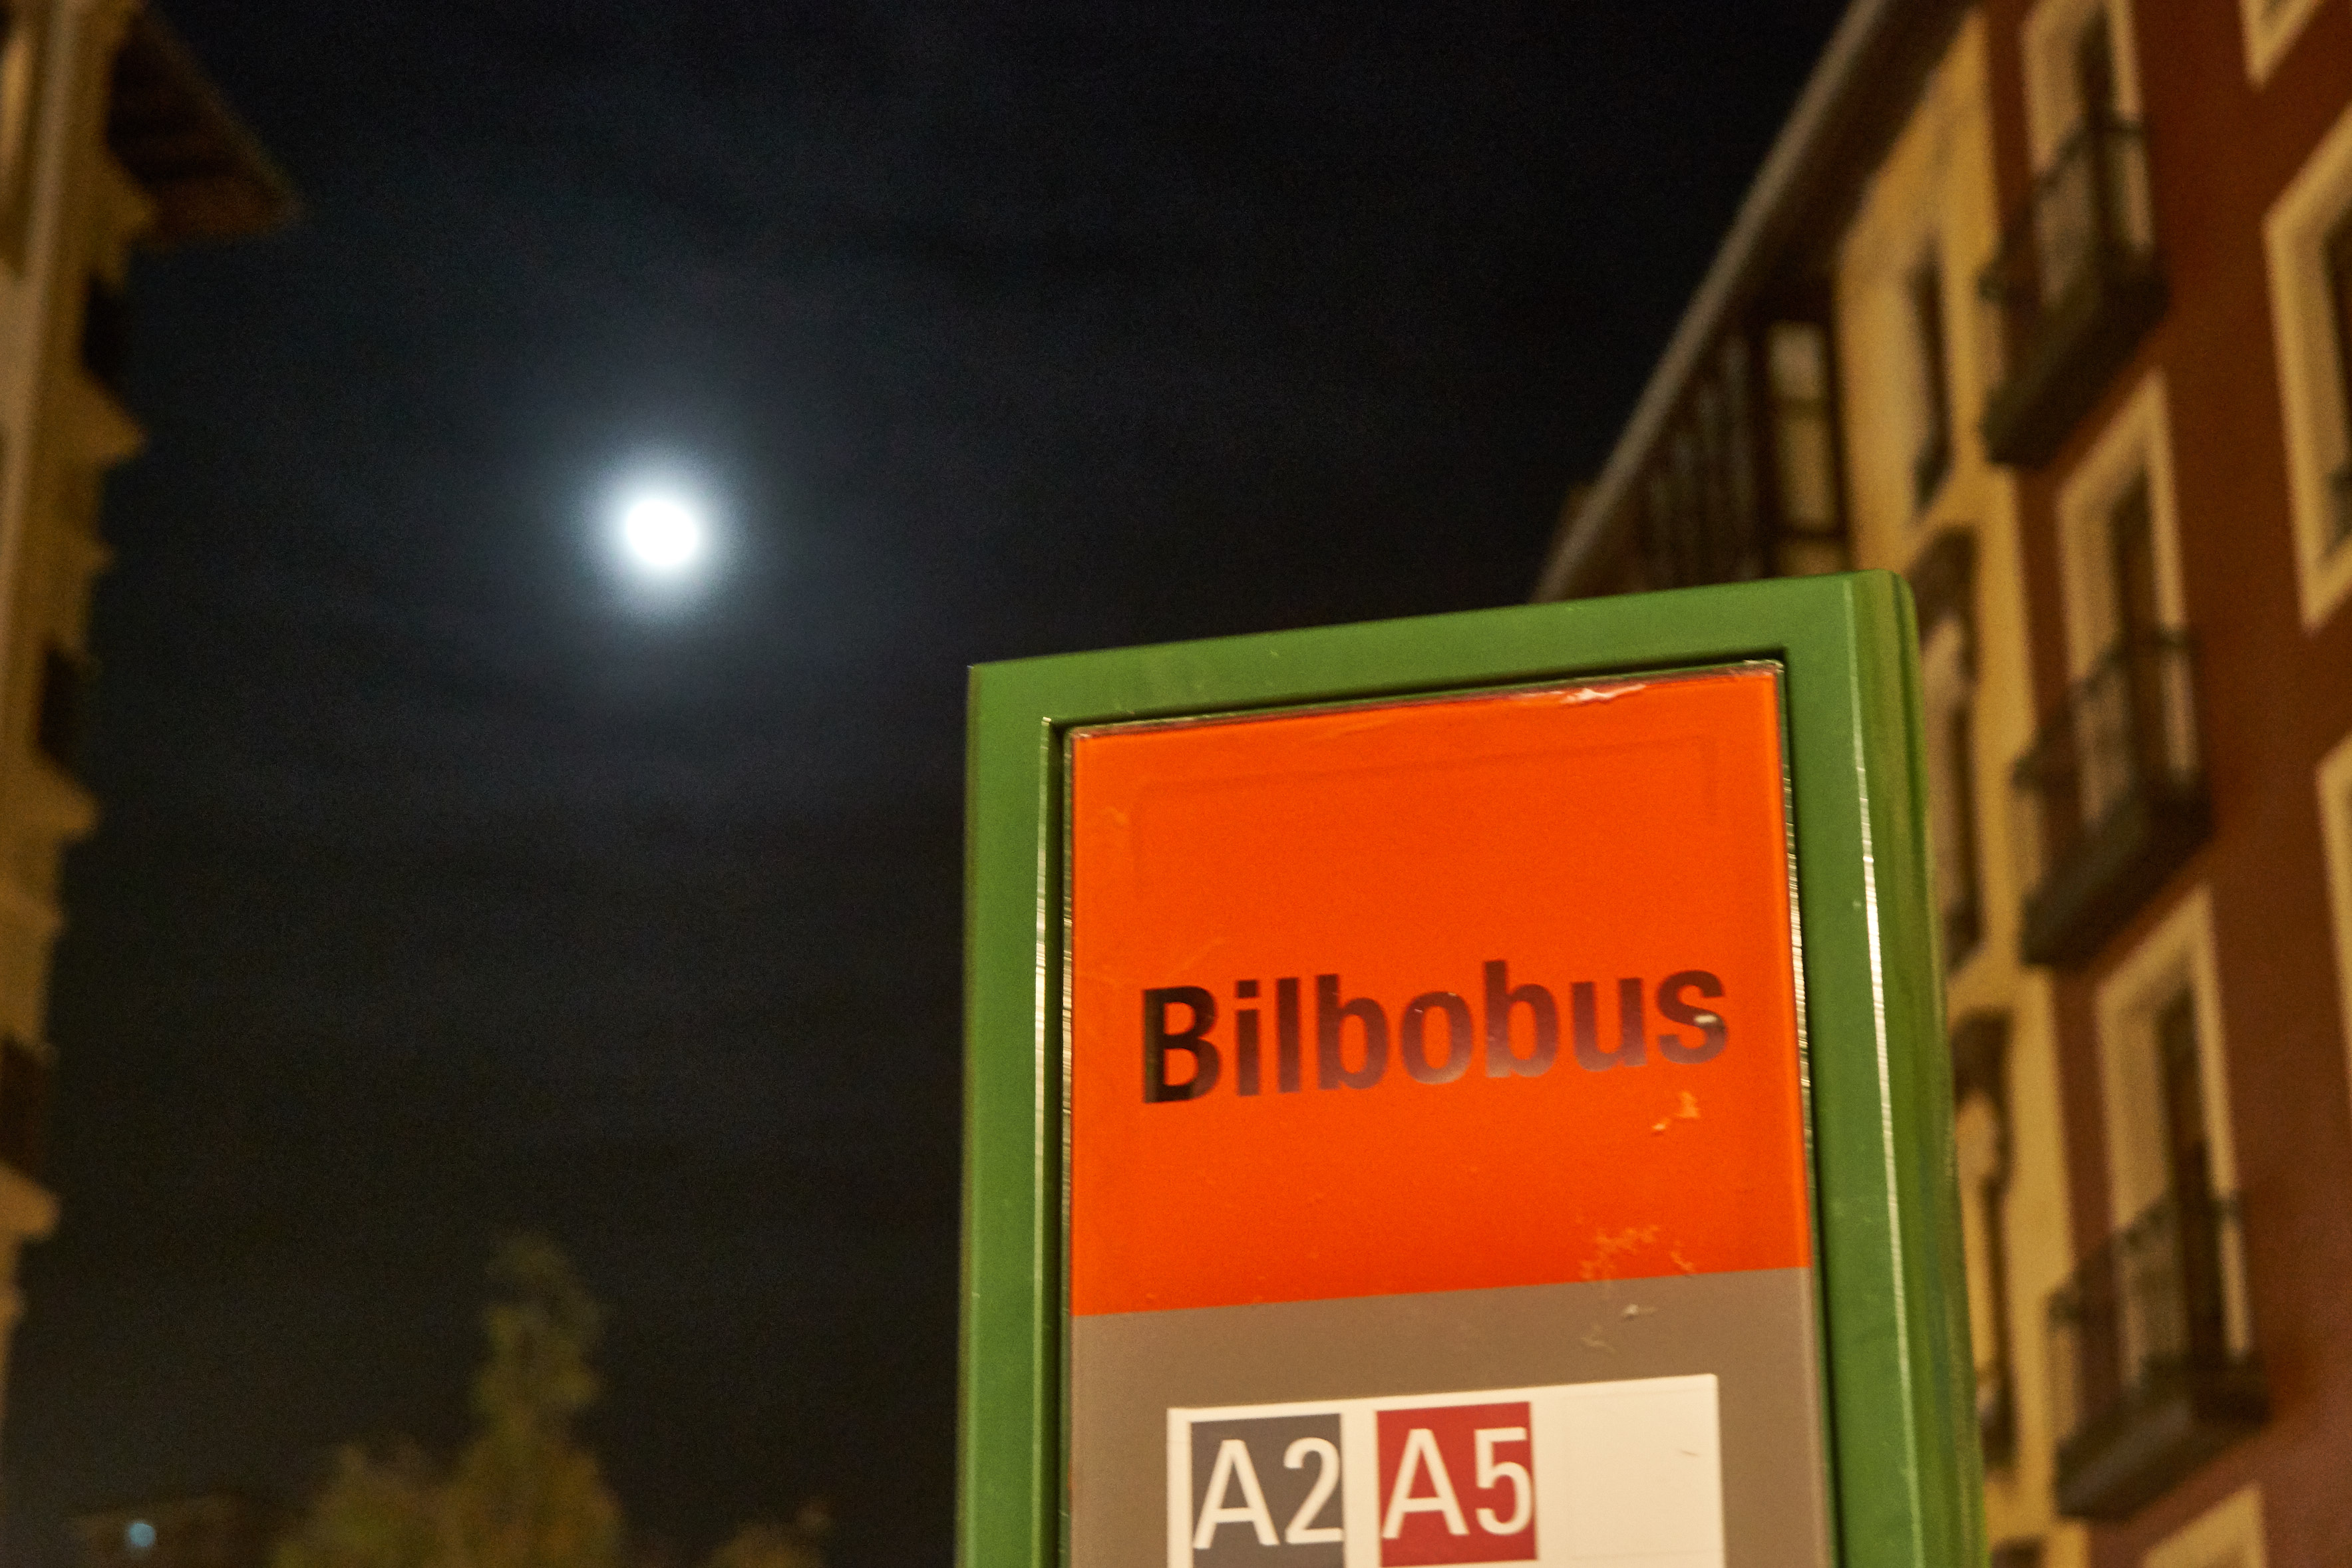 a stop of the Bilbobus